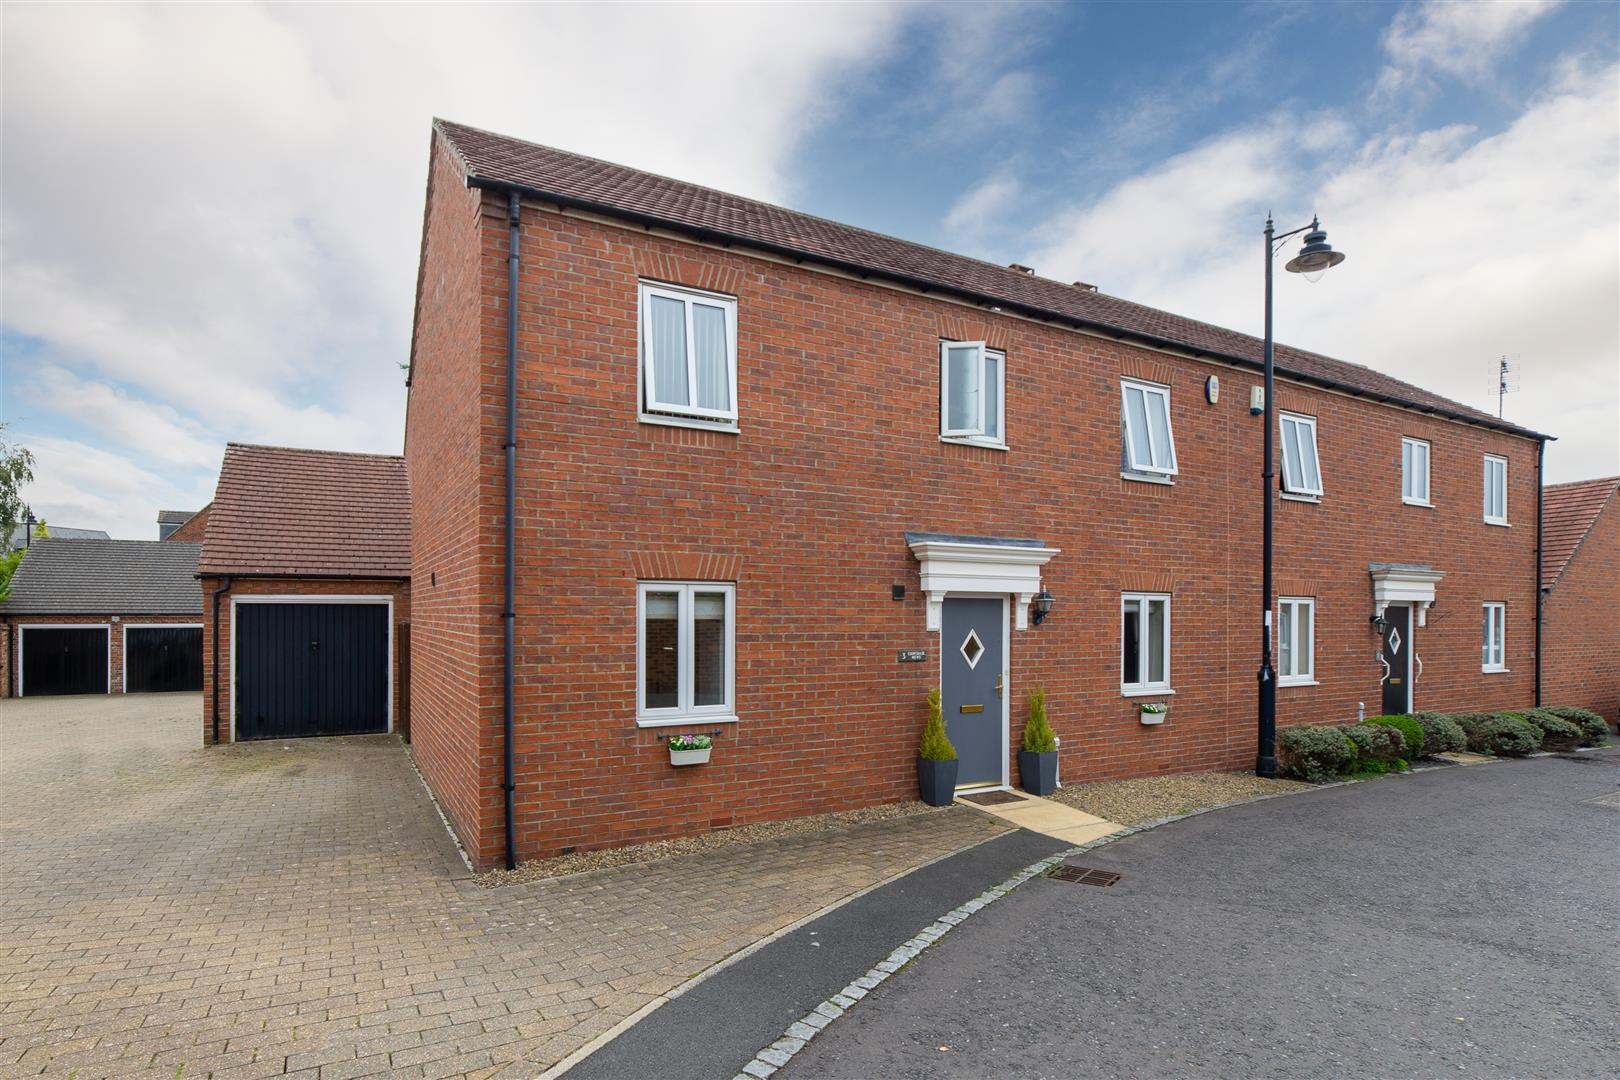 3 bed end of terrace house for sale in Chipchase Mews, Great Park, NE3